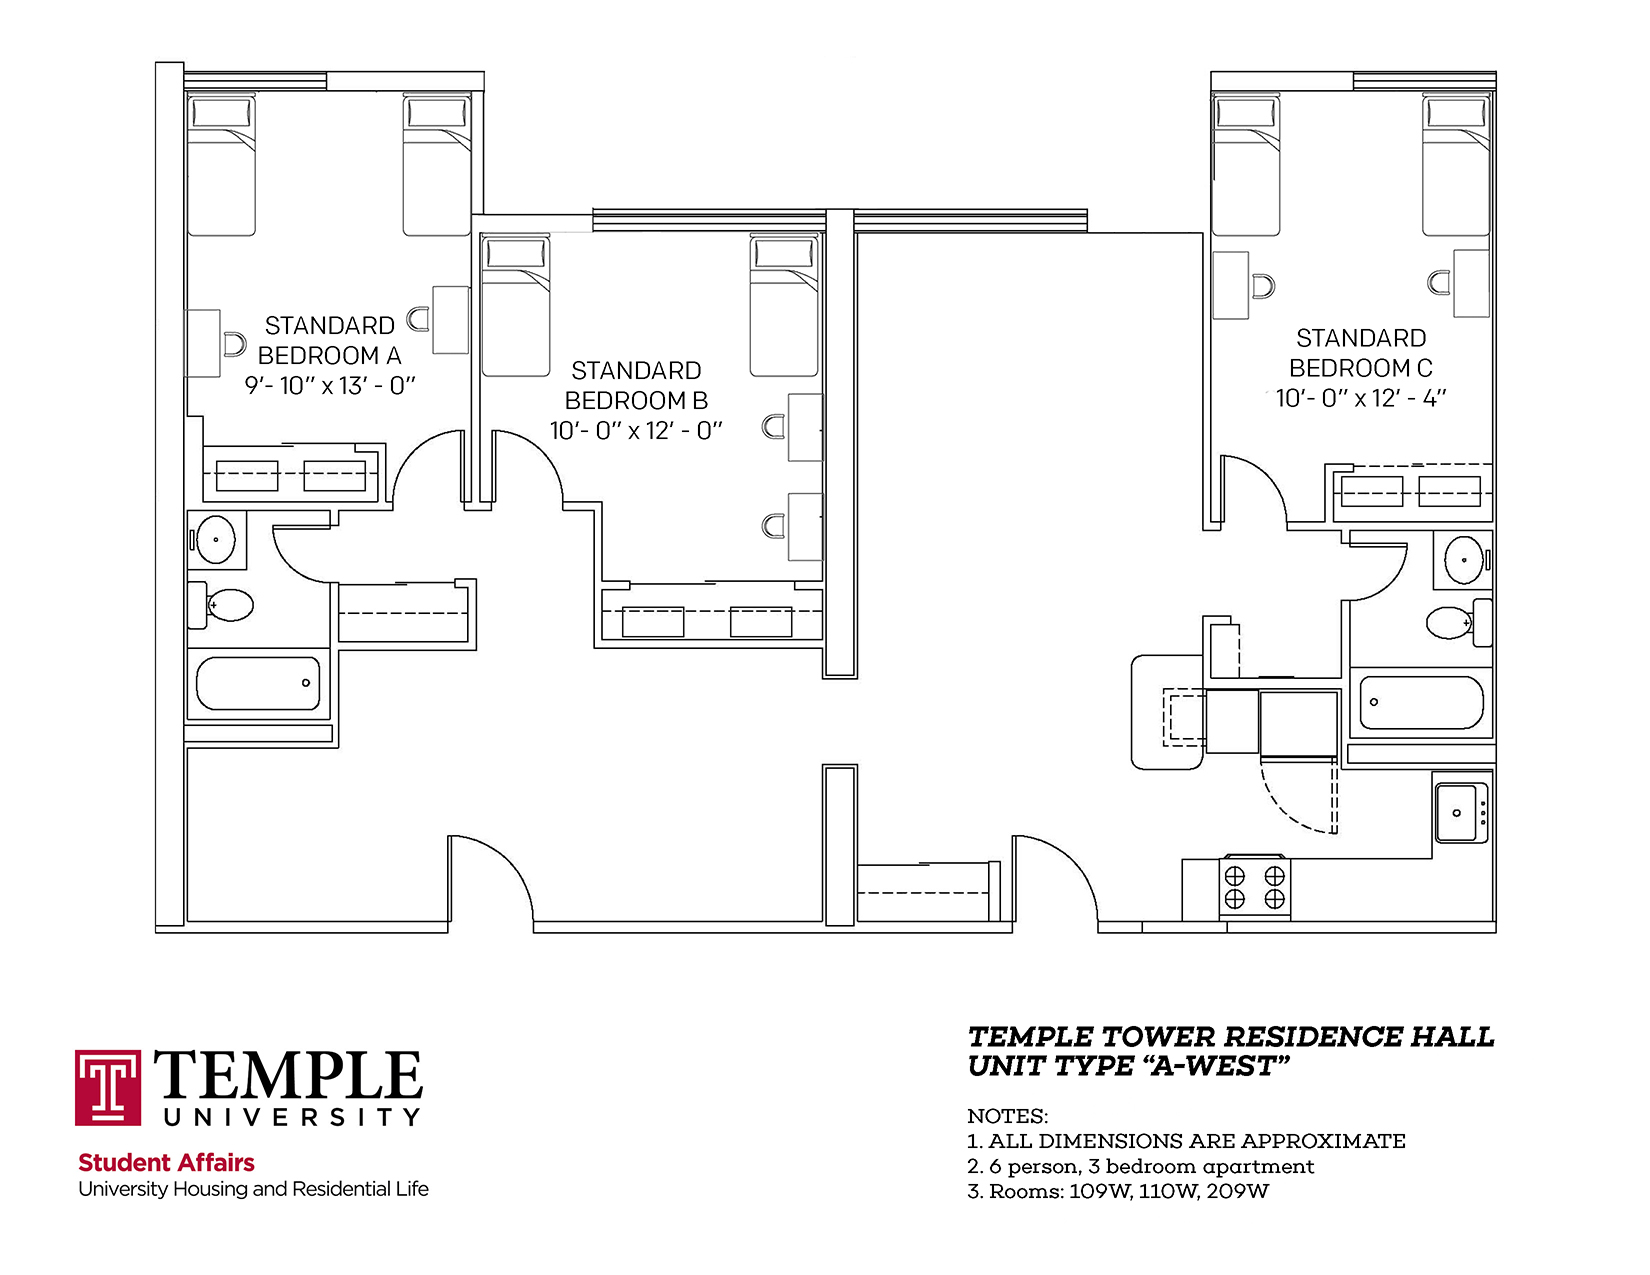 Temple Towers: Unit A West - 6 person, 3 bedroom Apartment